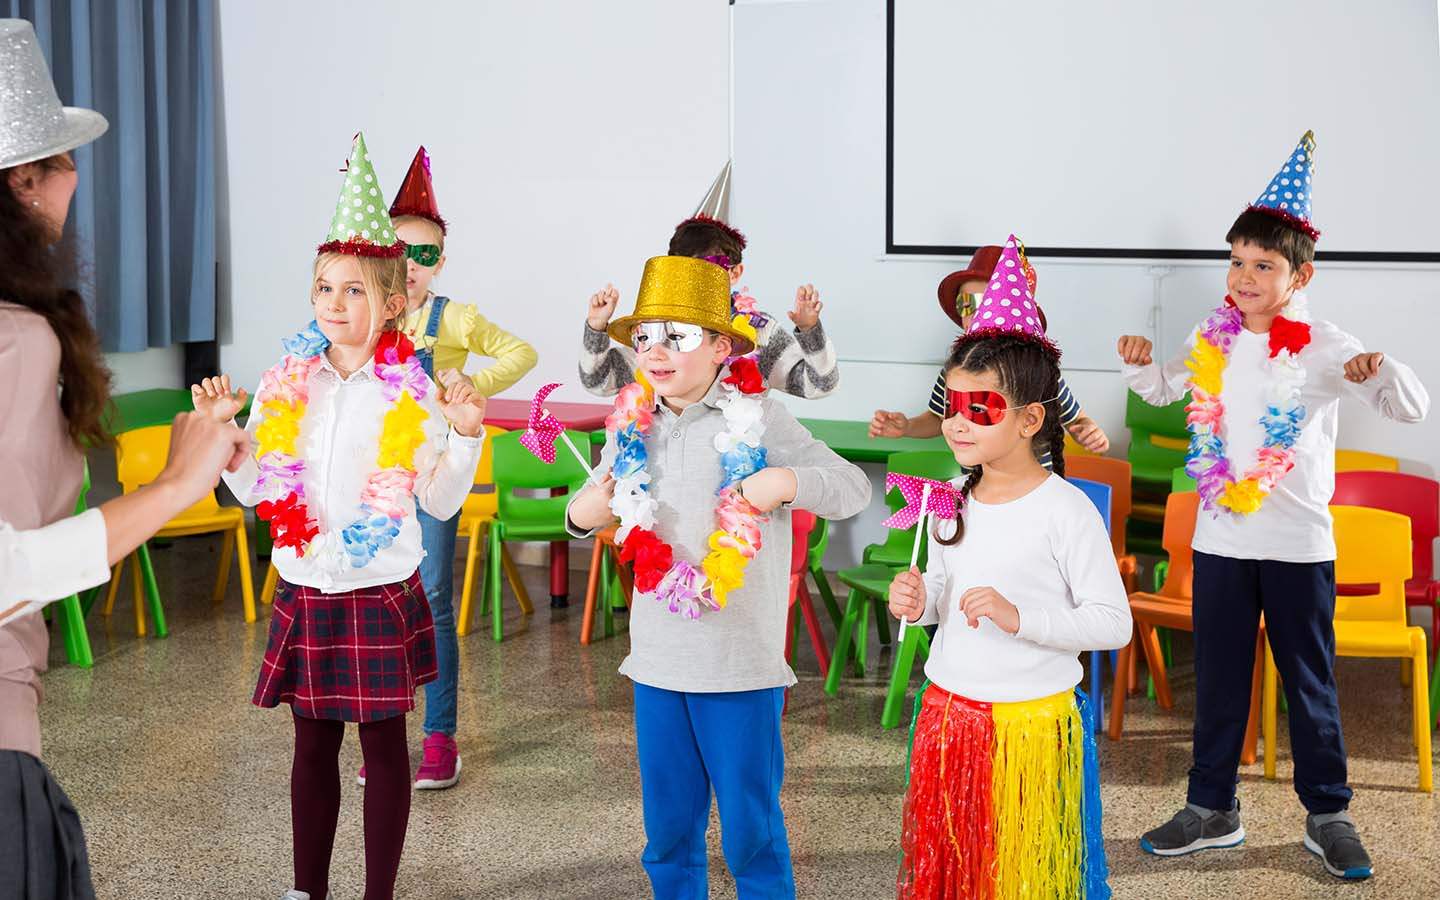 Students under going a fun activity inan American School in Sharjah